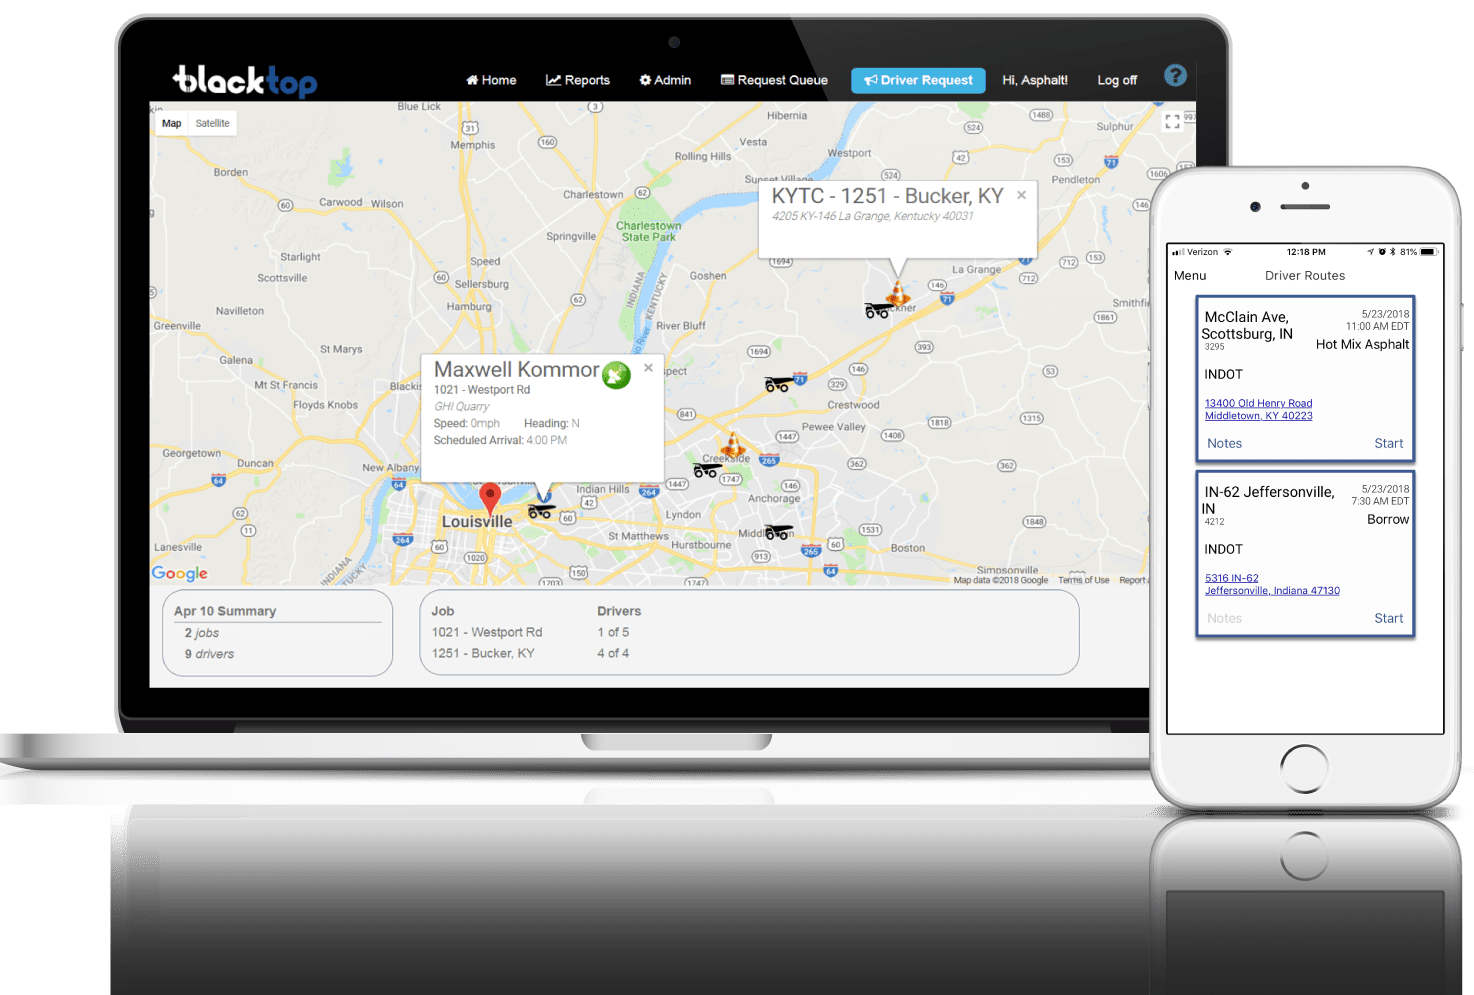 Meta Construction Technologies, LLC - BlackTop - Asphalt Mobile Tracking and Dispatch Platform